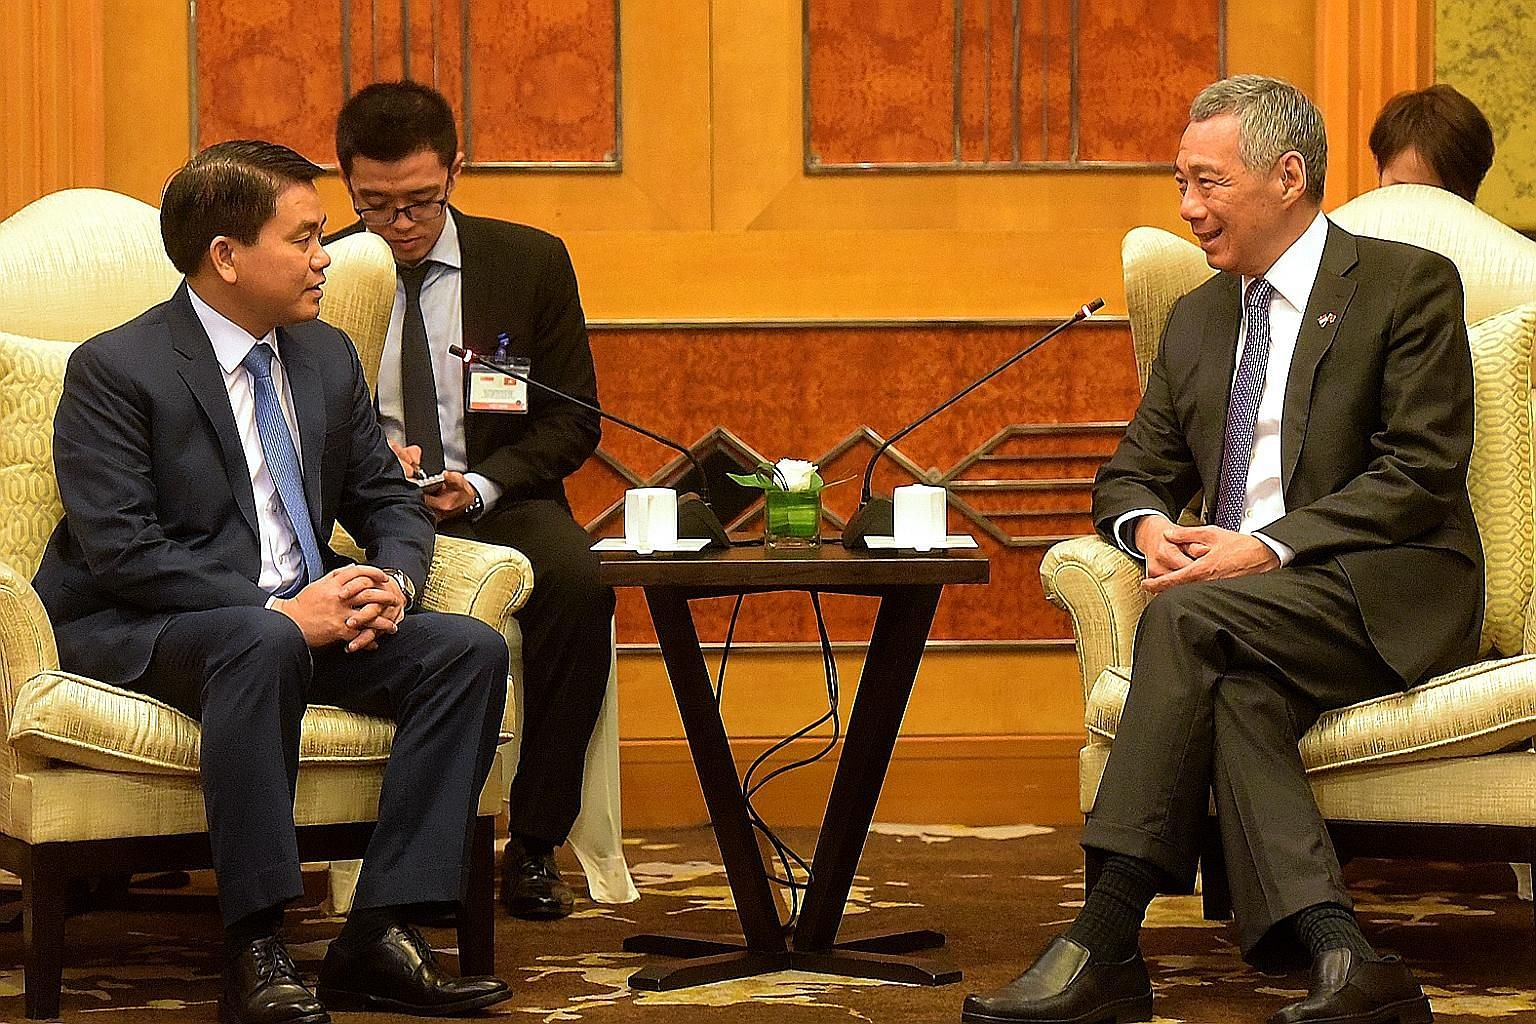 Hanoi People's Committee chairman Nguyen Duc Chung calling on PM Lee at a hotel in Vietnam's capital city yesterday.